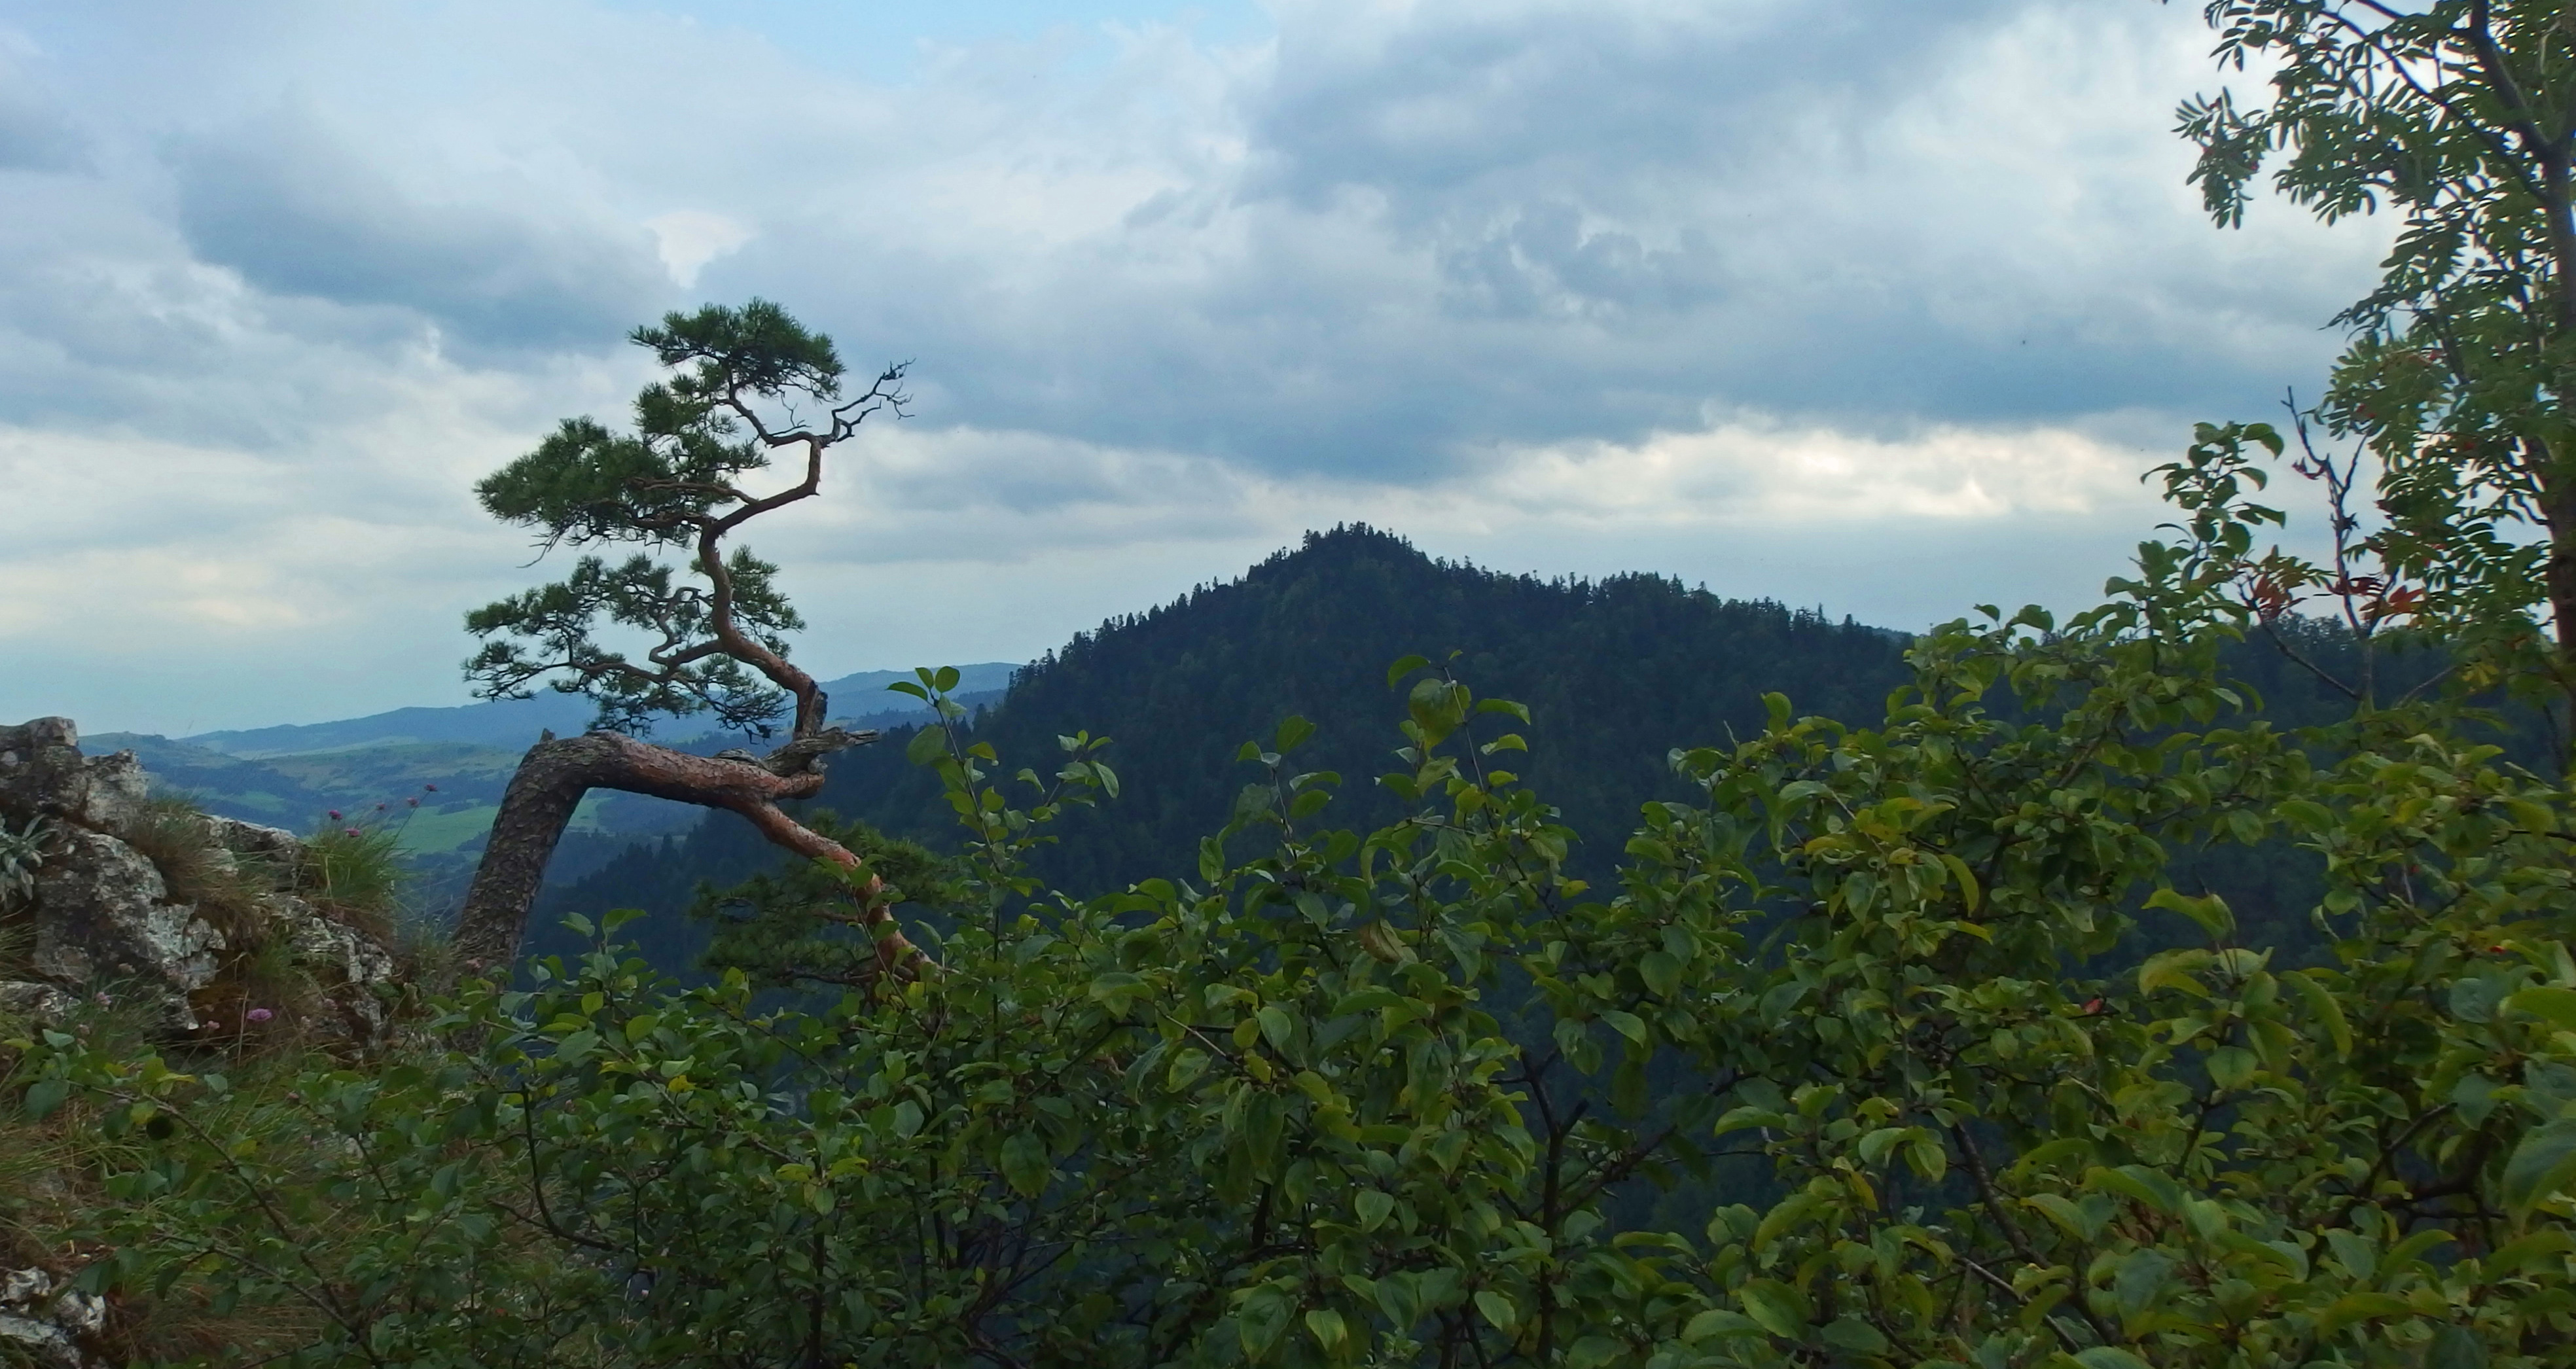 Pieniny Mountains - small but beautiful